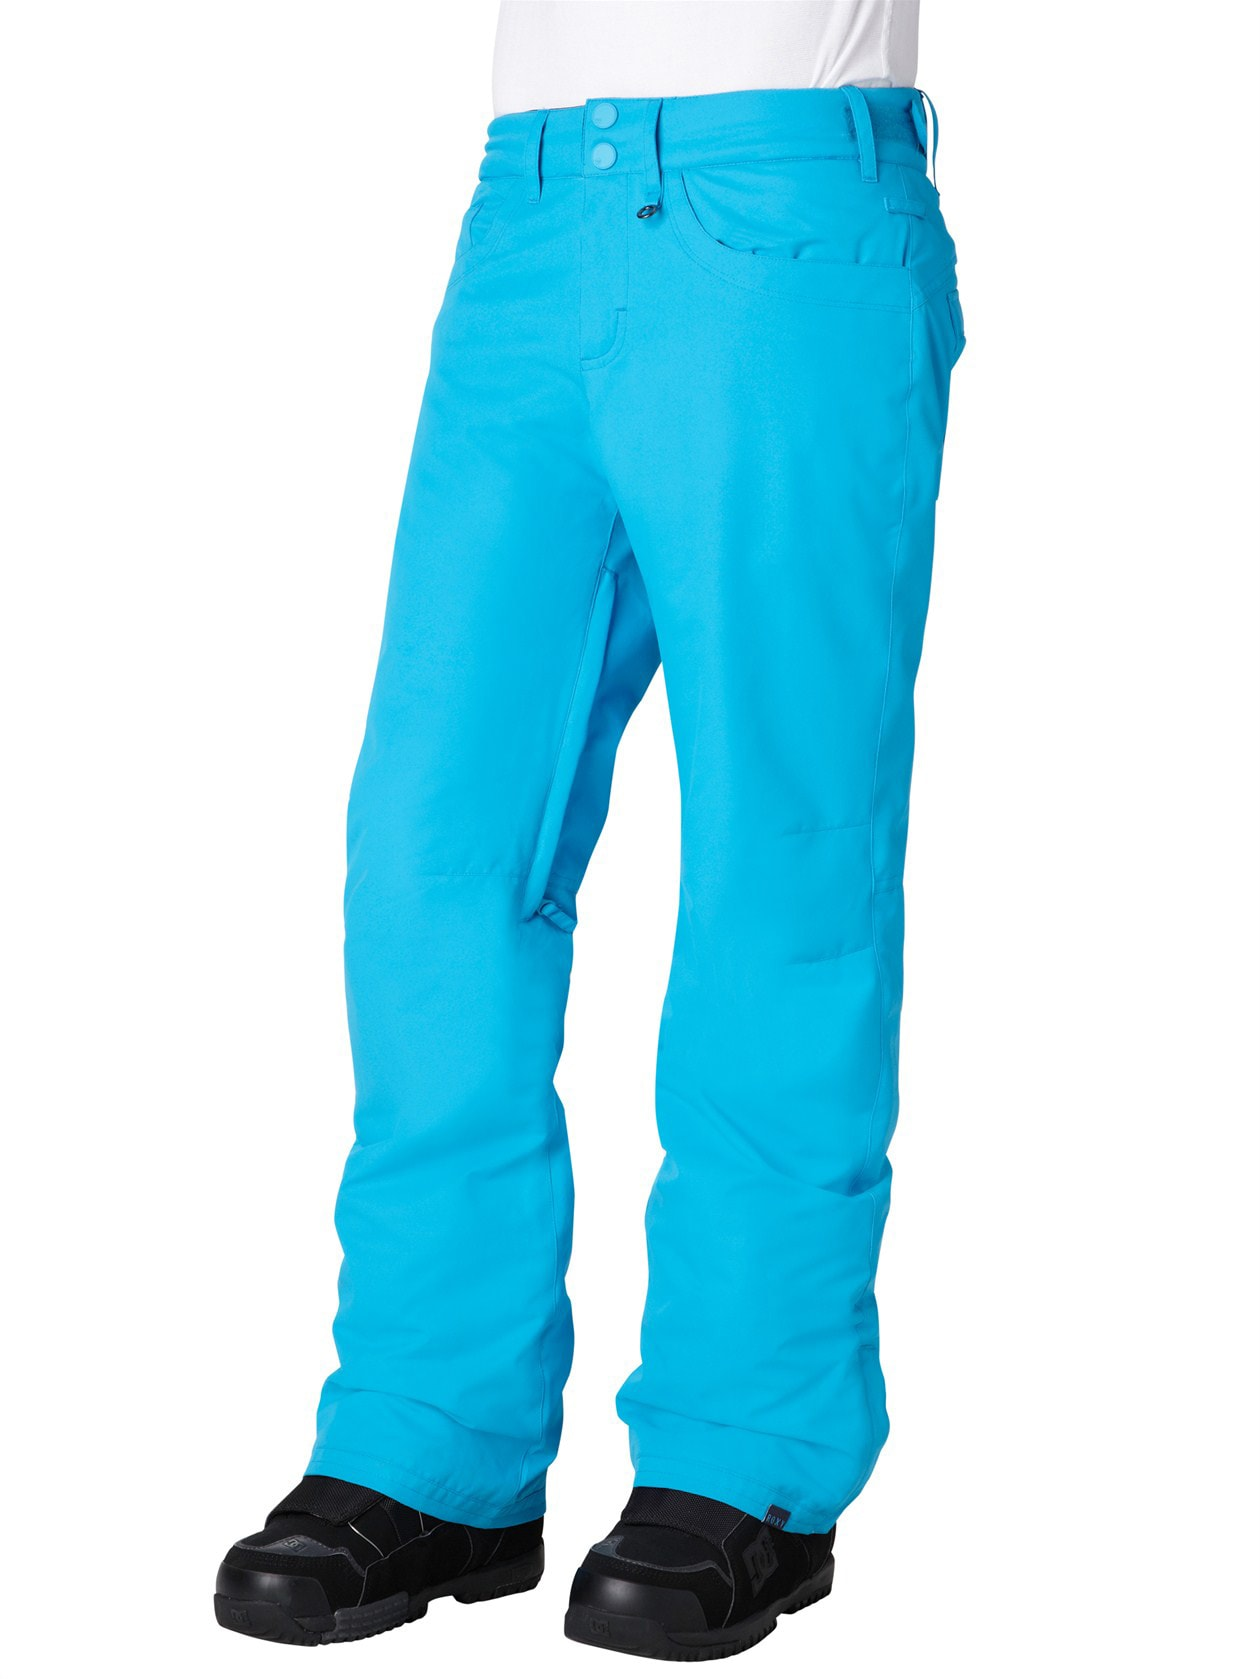 On Sale Roxy Backyards Snowboard Pants Womens Up To 50 Off